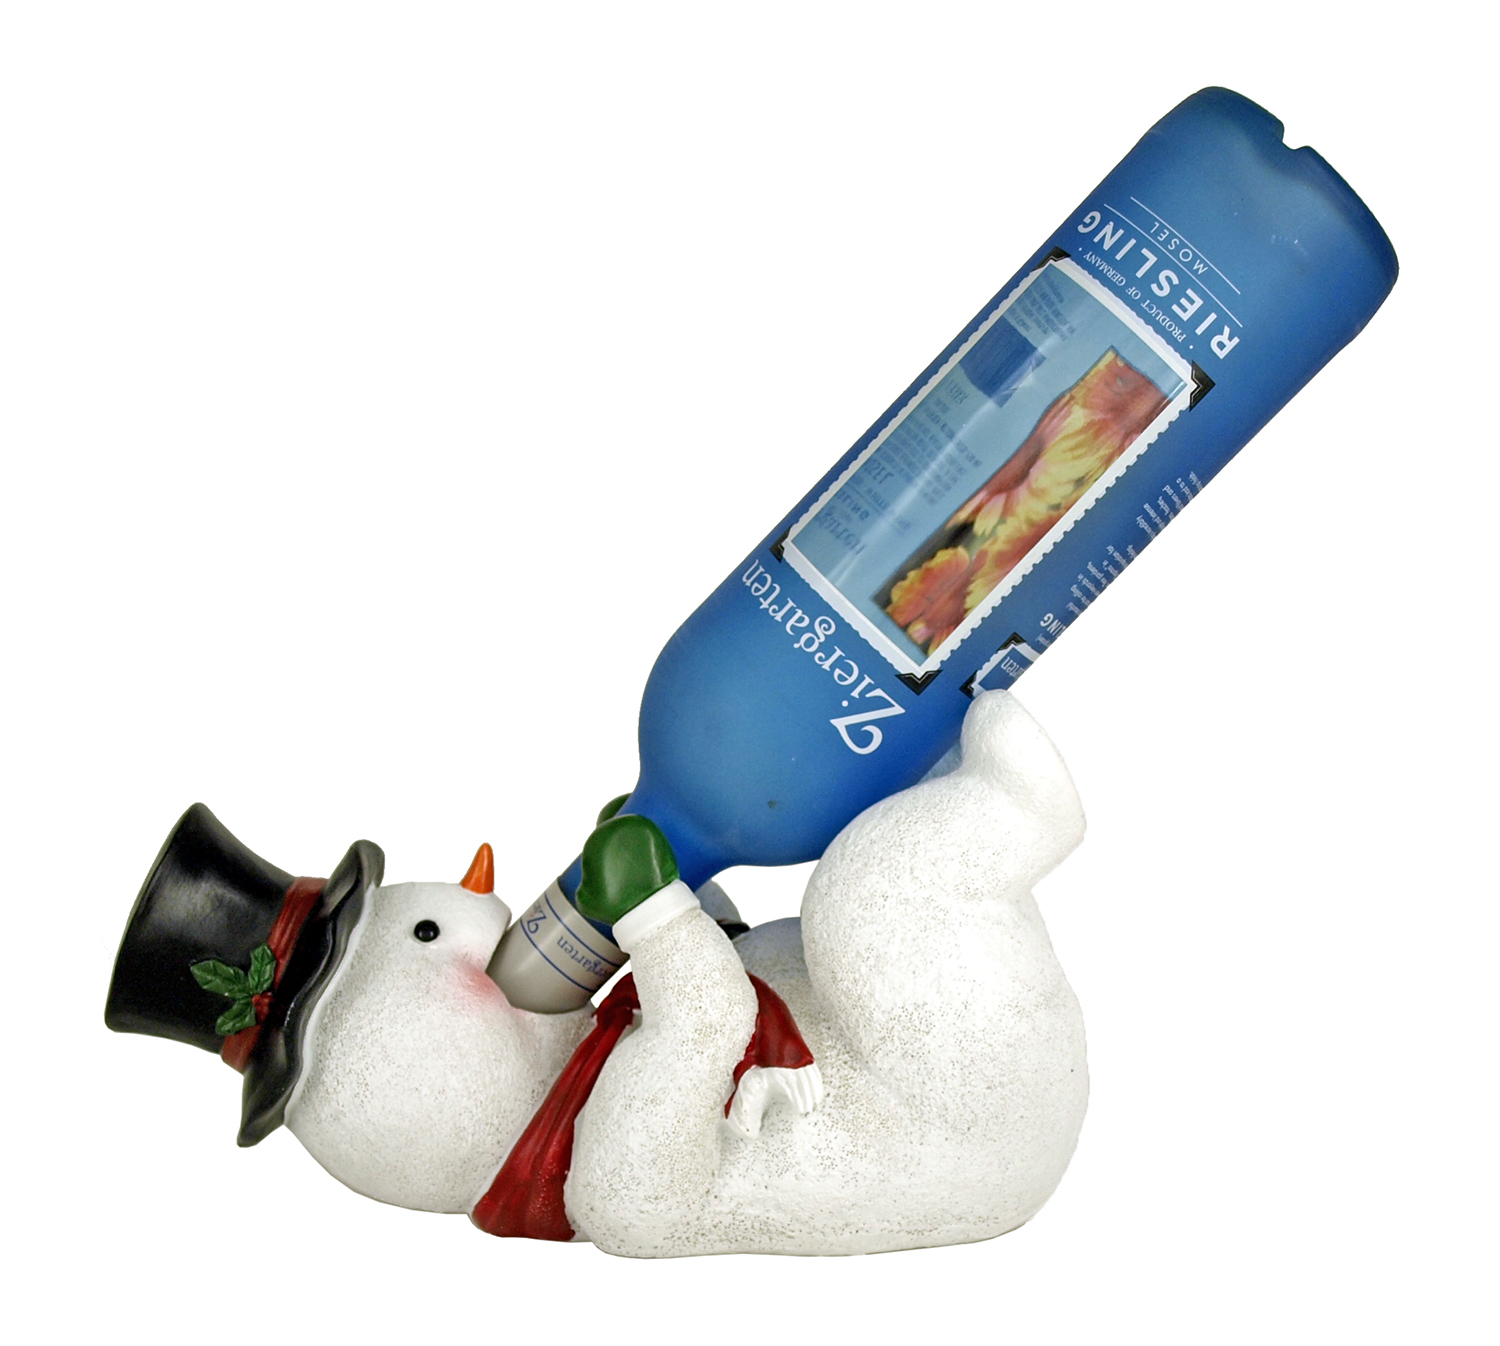 11 in Spirit of Christmas Wine Bottle Holder - Snowman